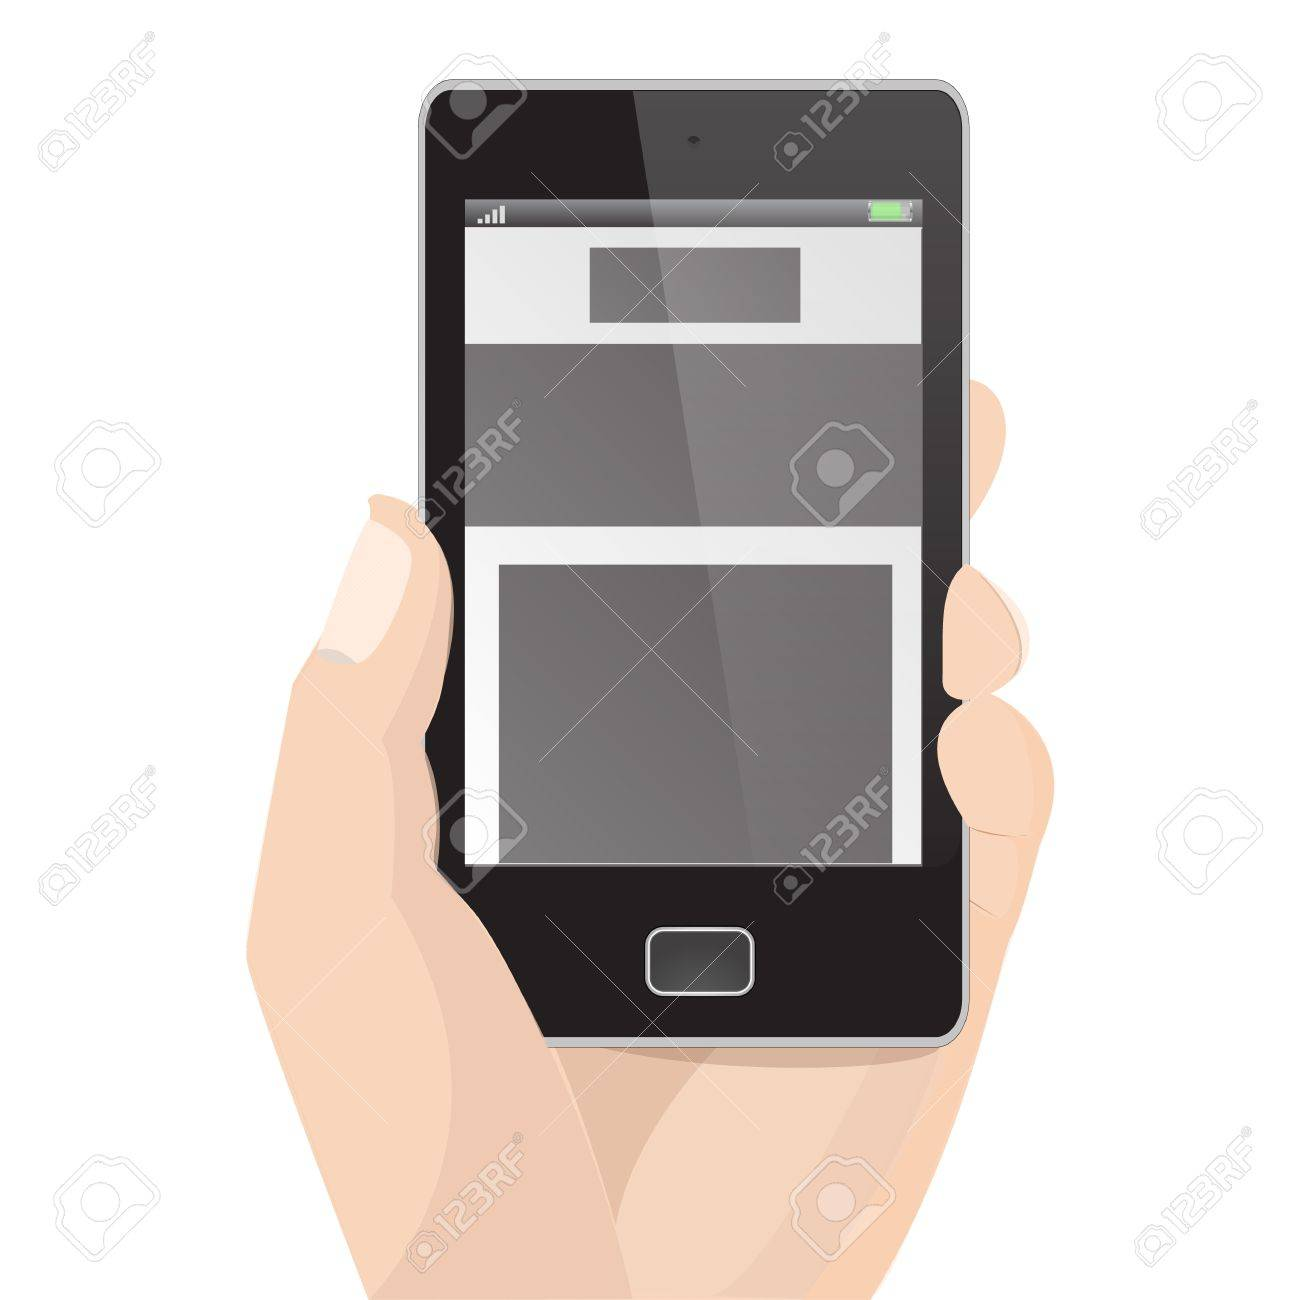 Responsive Layout Vertical Display Mobile Phone Graphic Stock Vector - 18542454